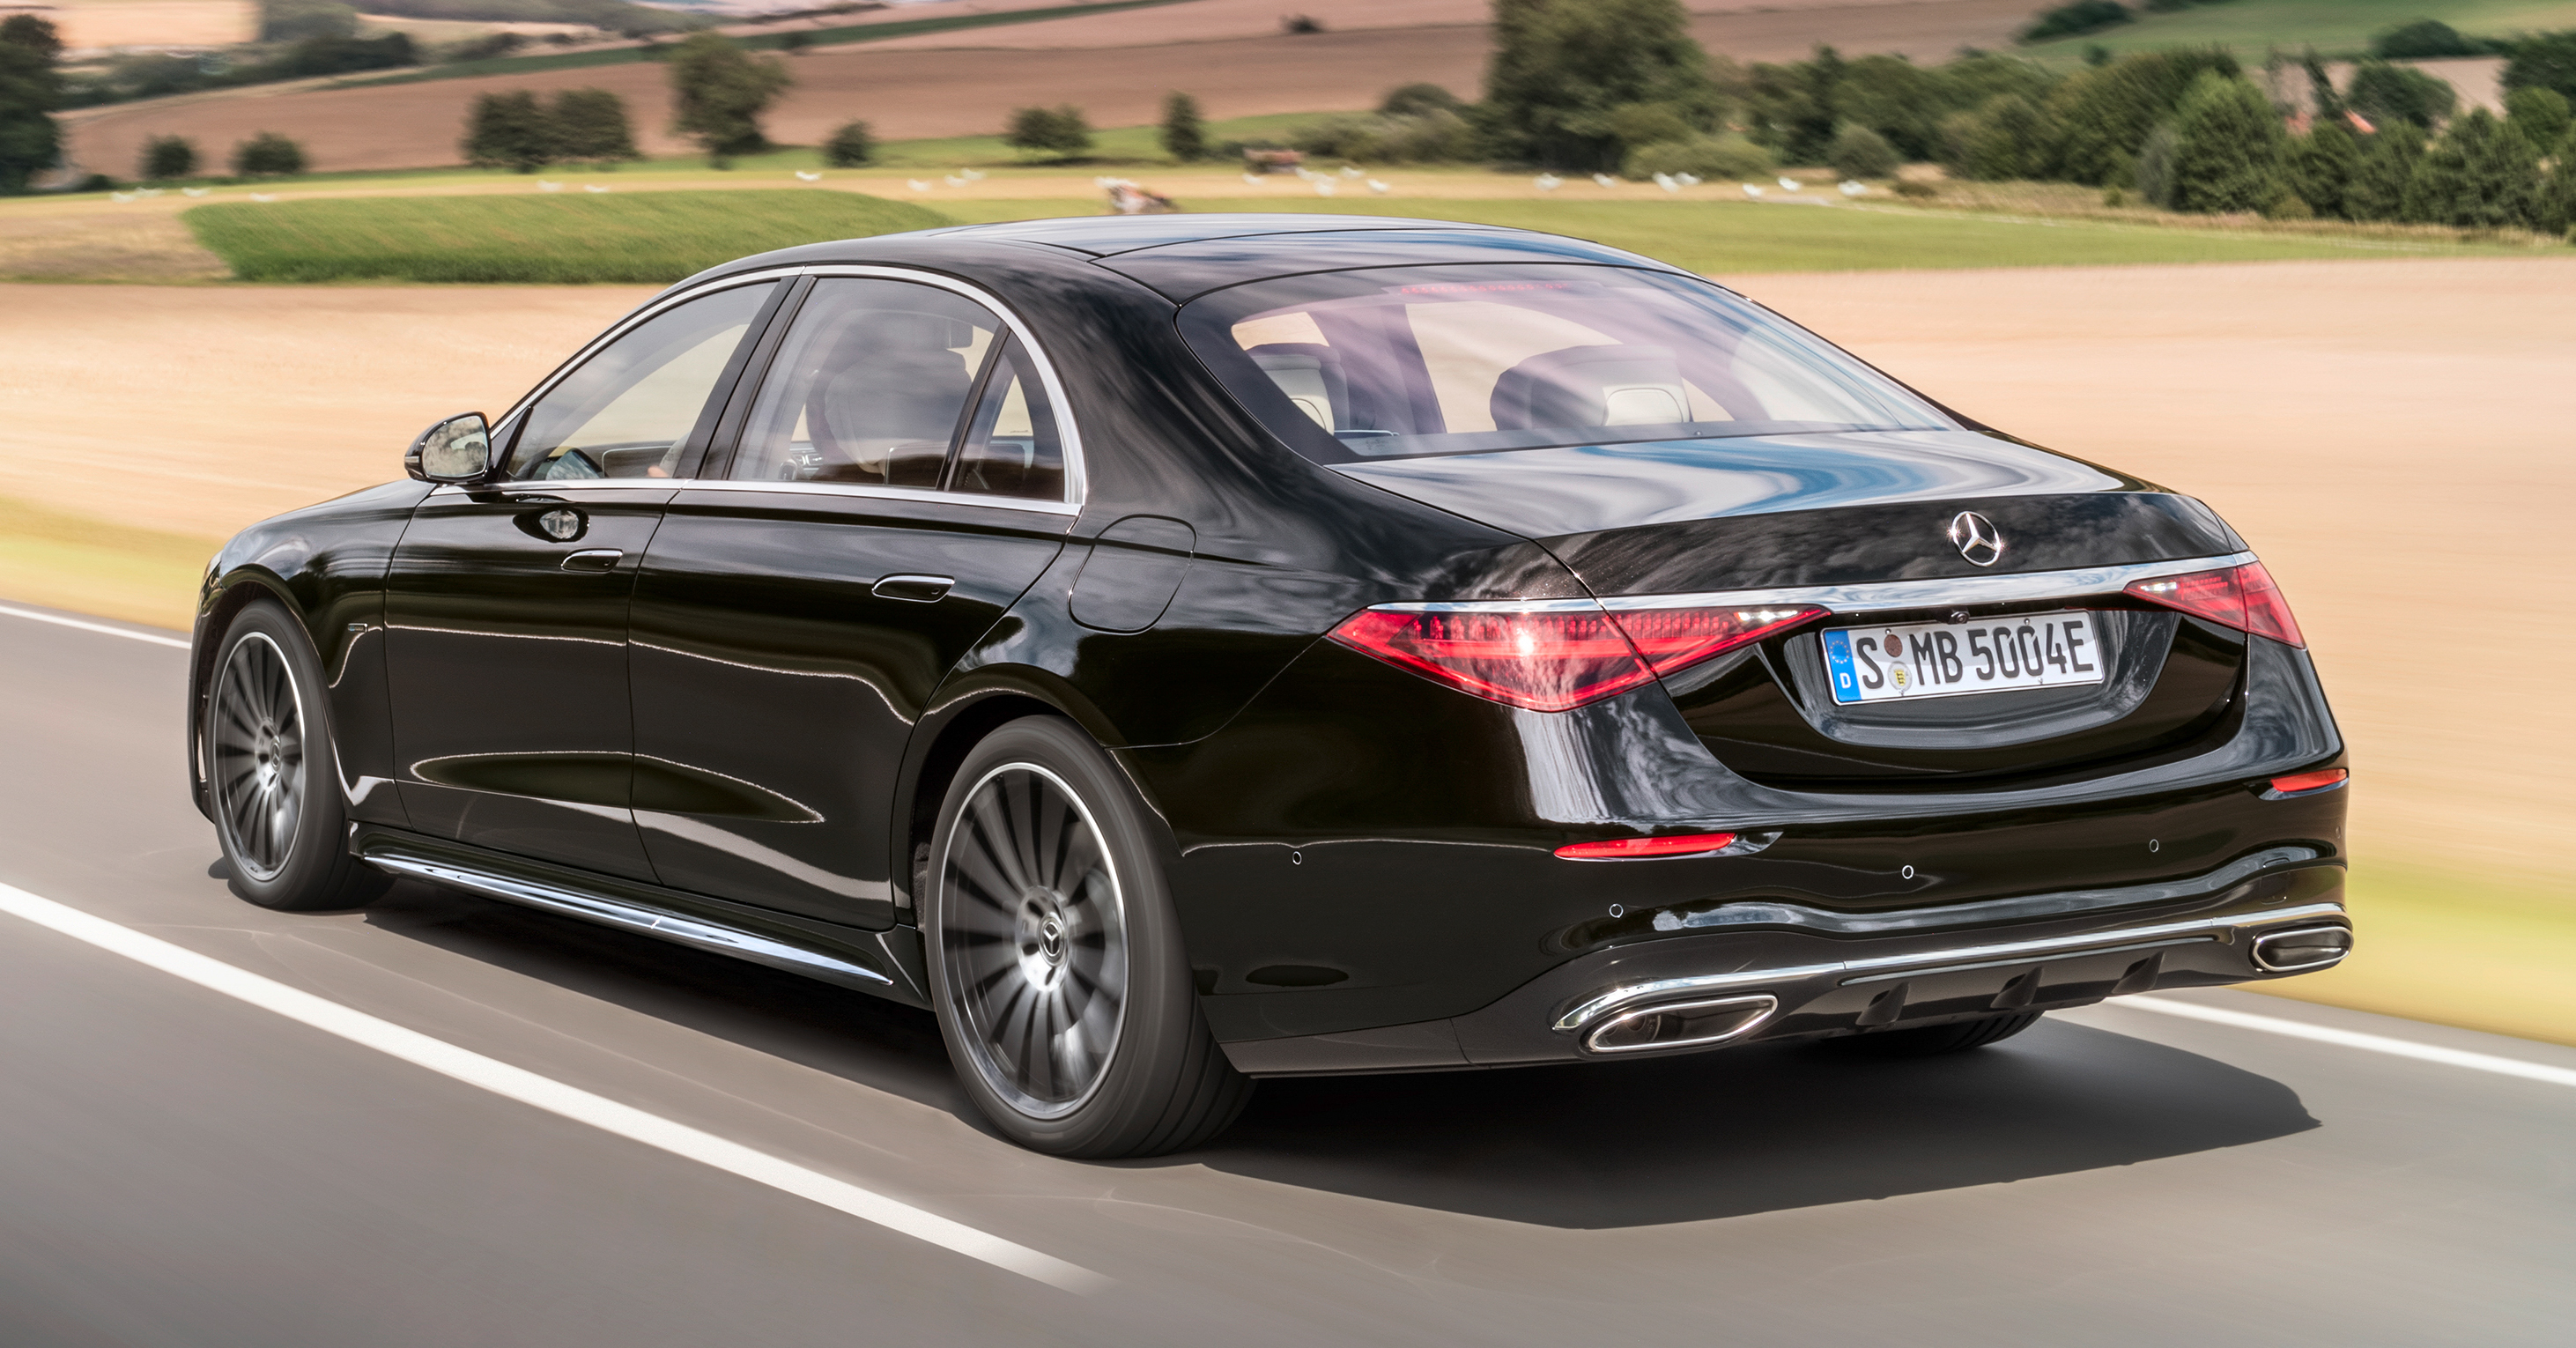 2021 mercedes-benz s-class revealed - w223 to get